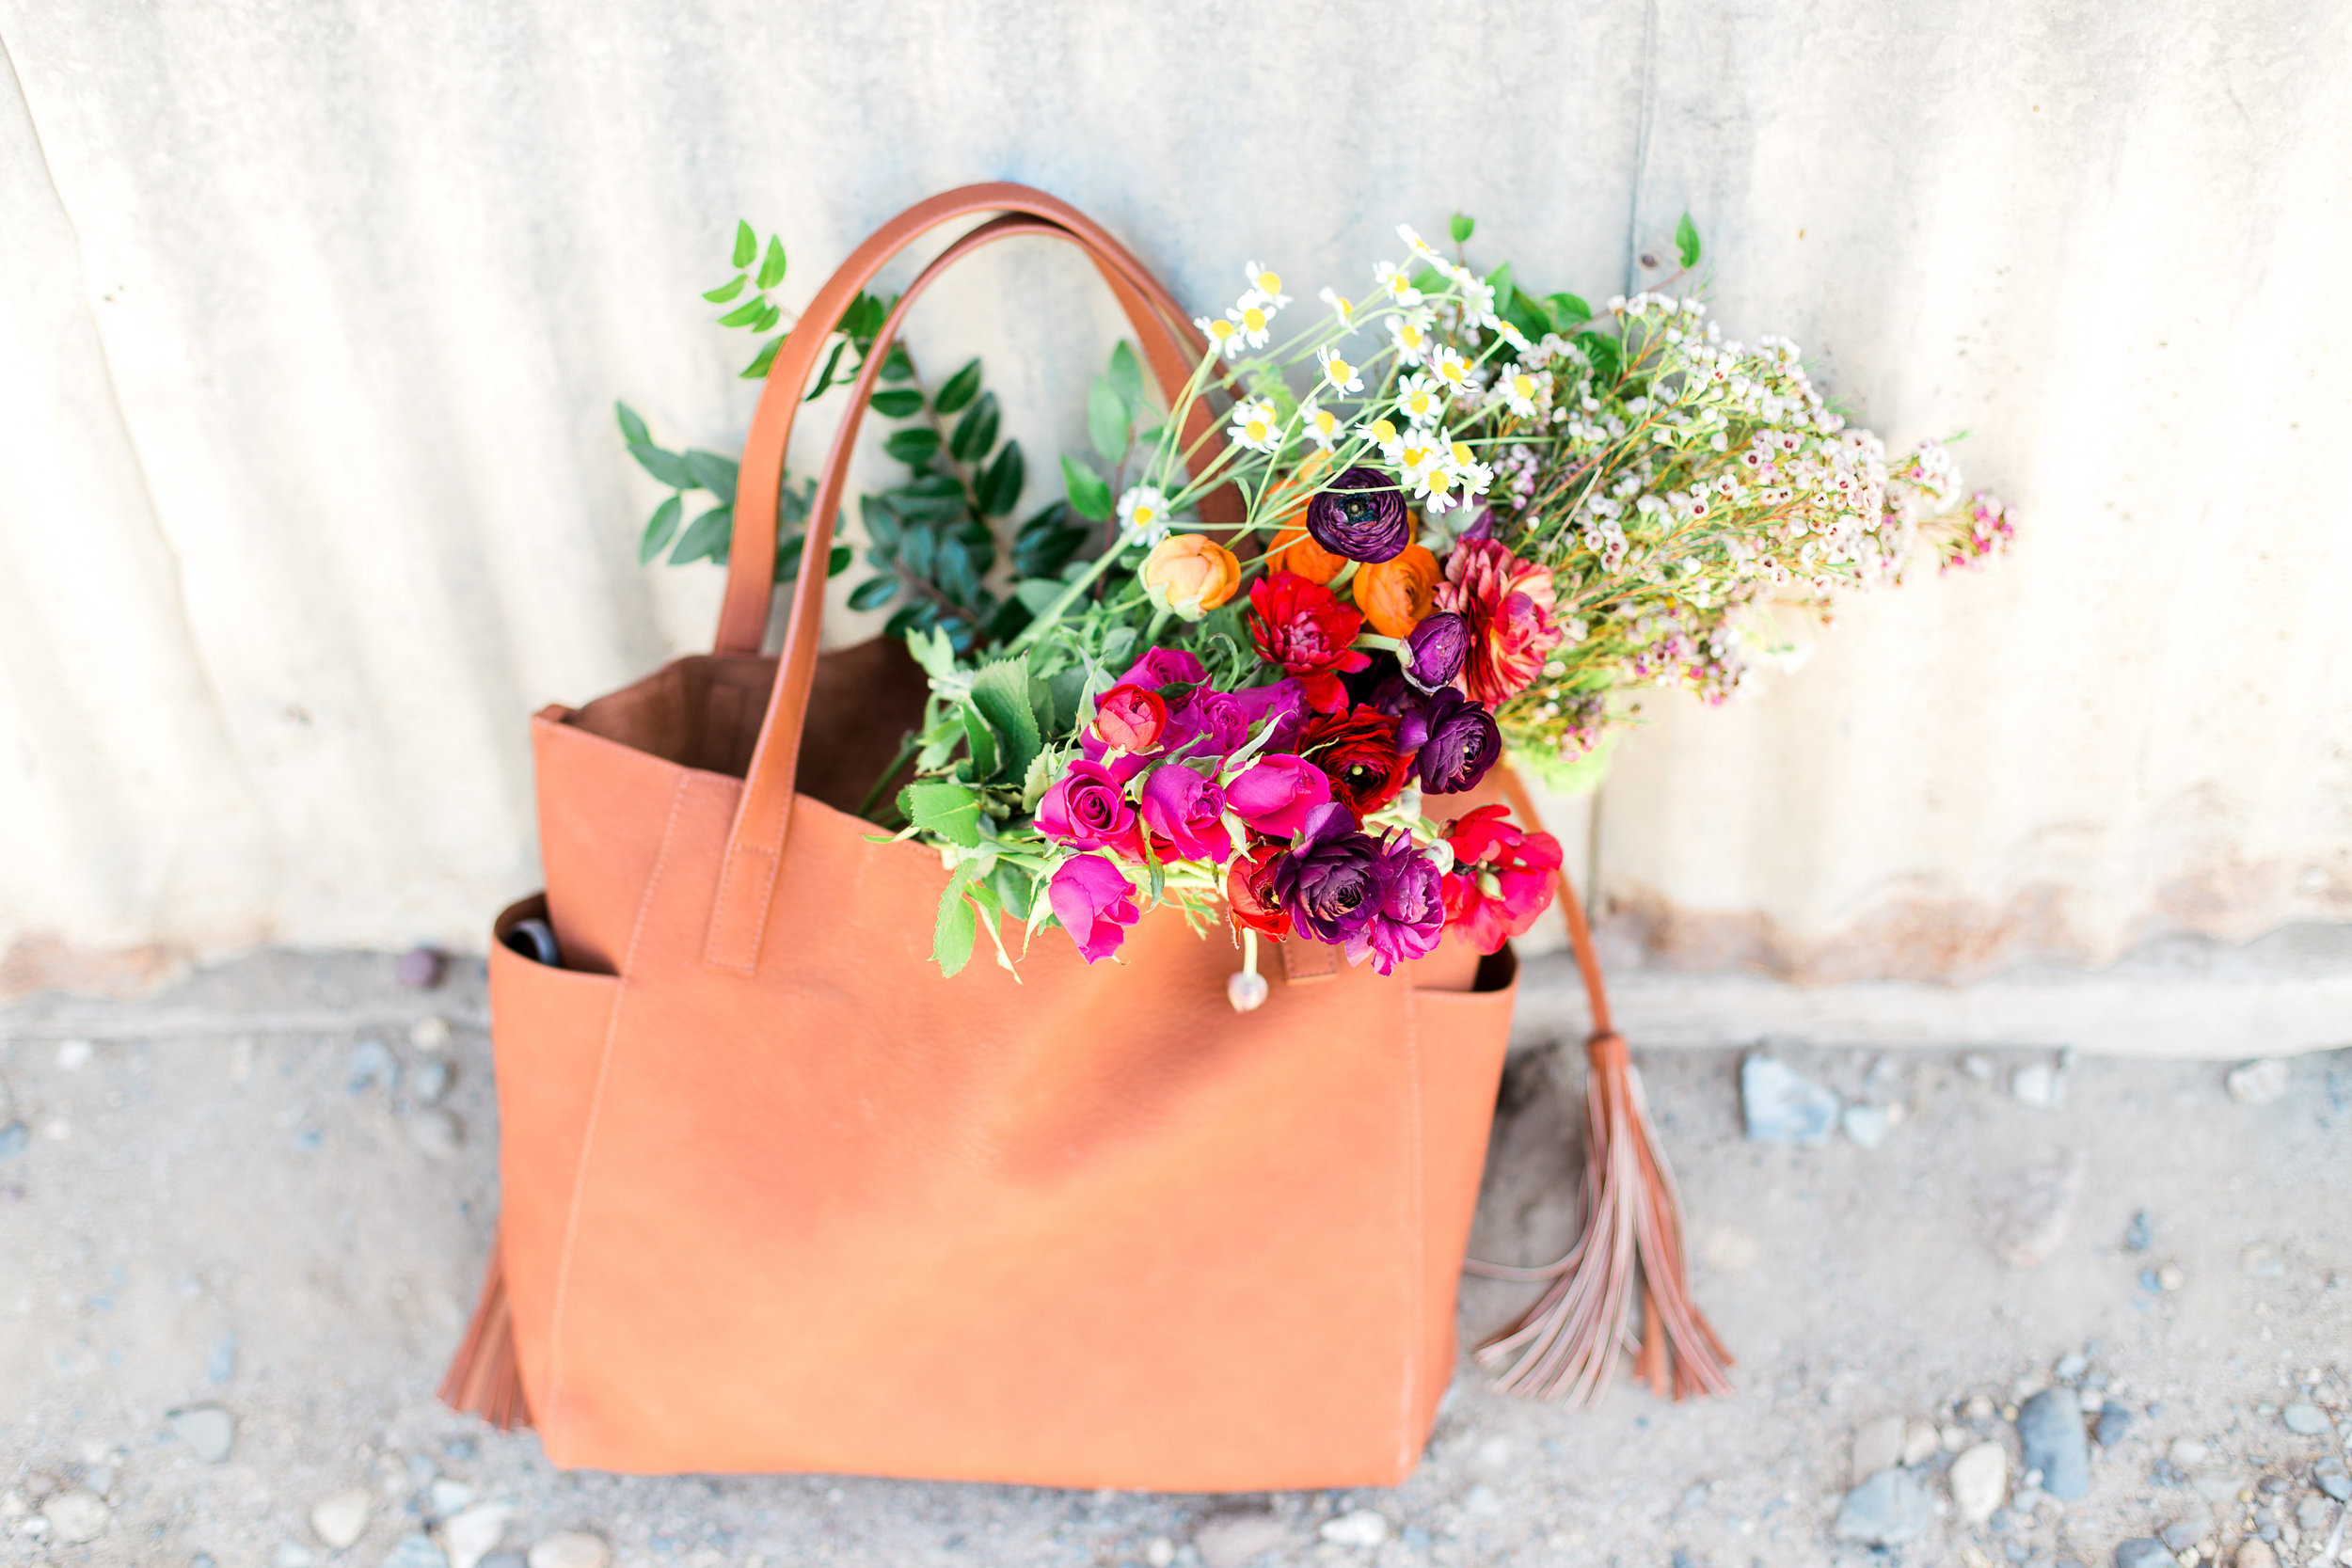 Tote of flowers